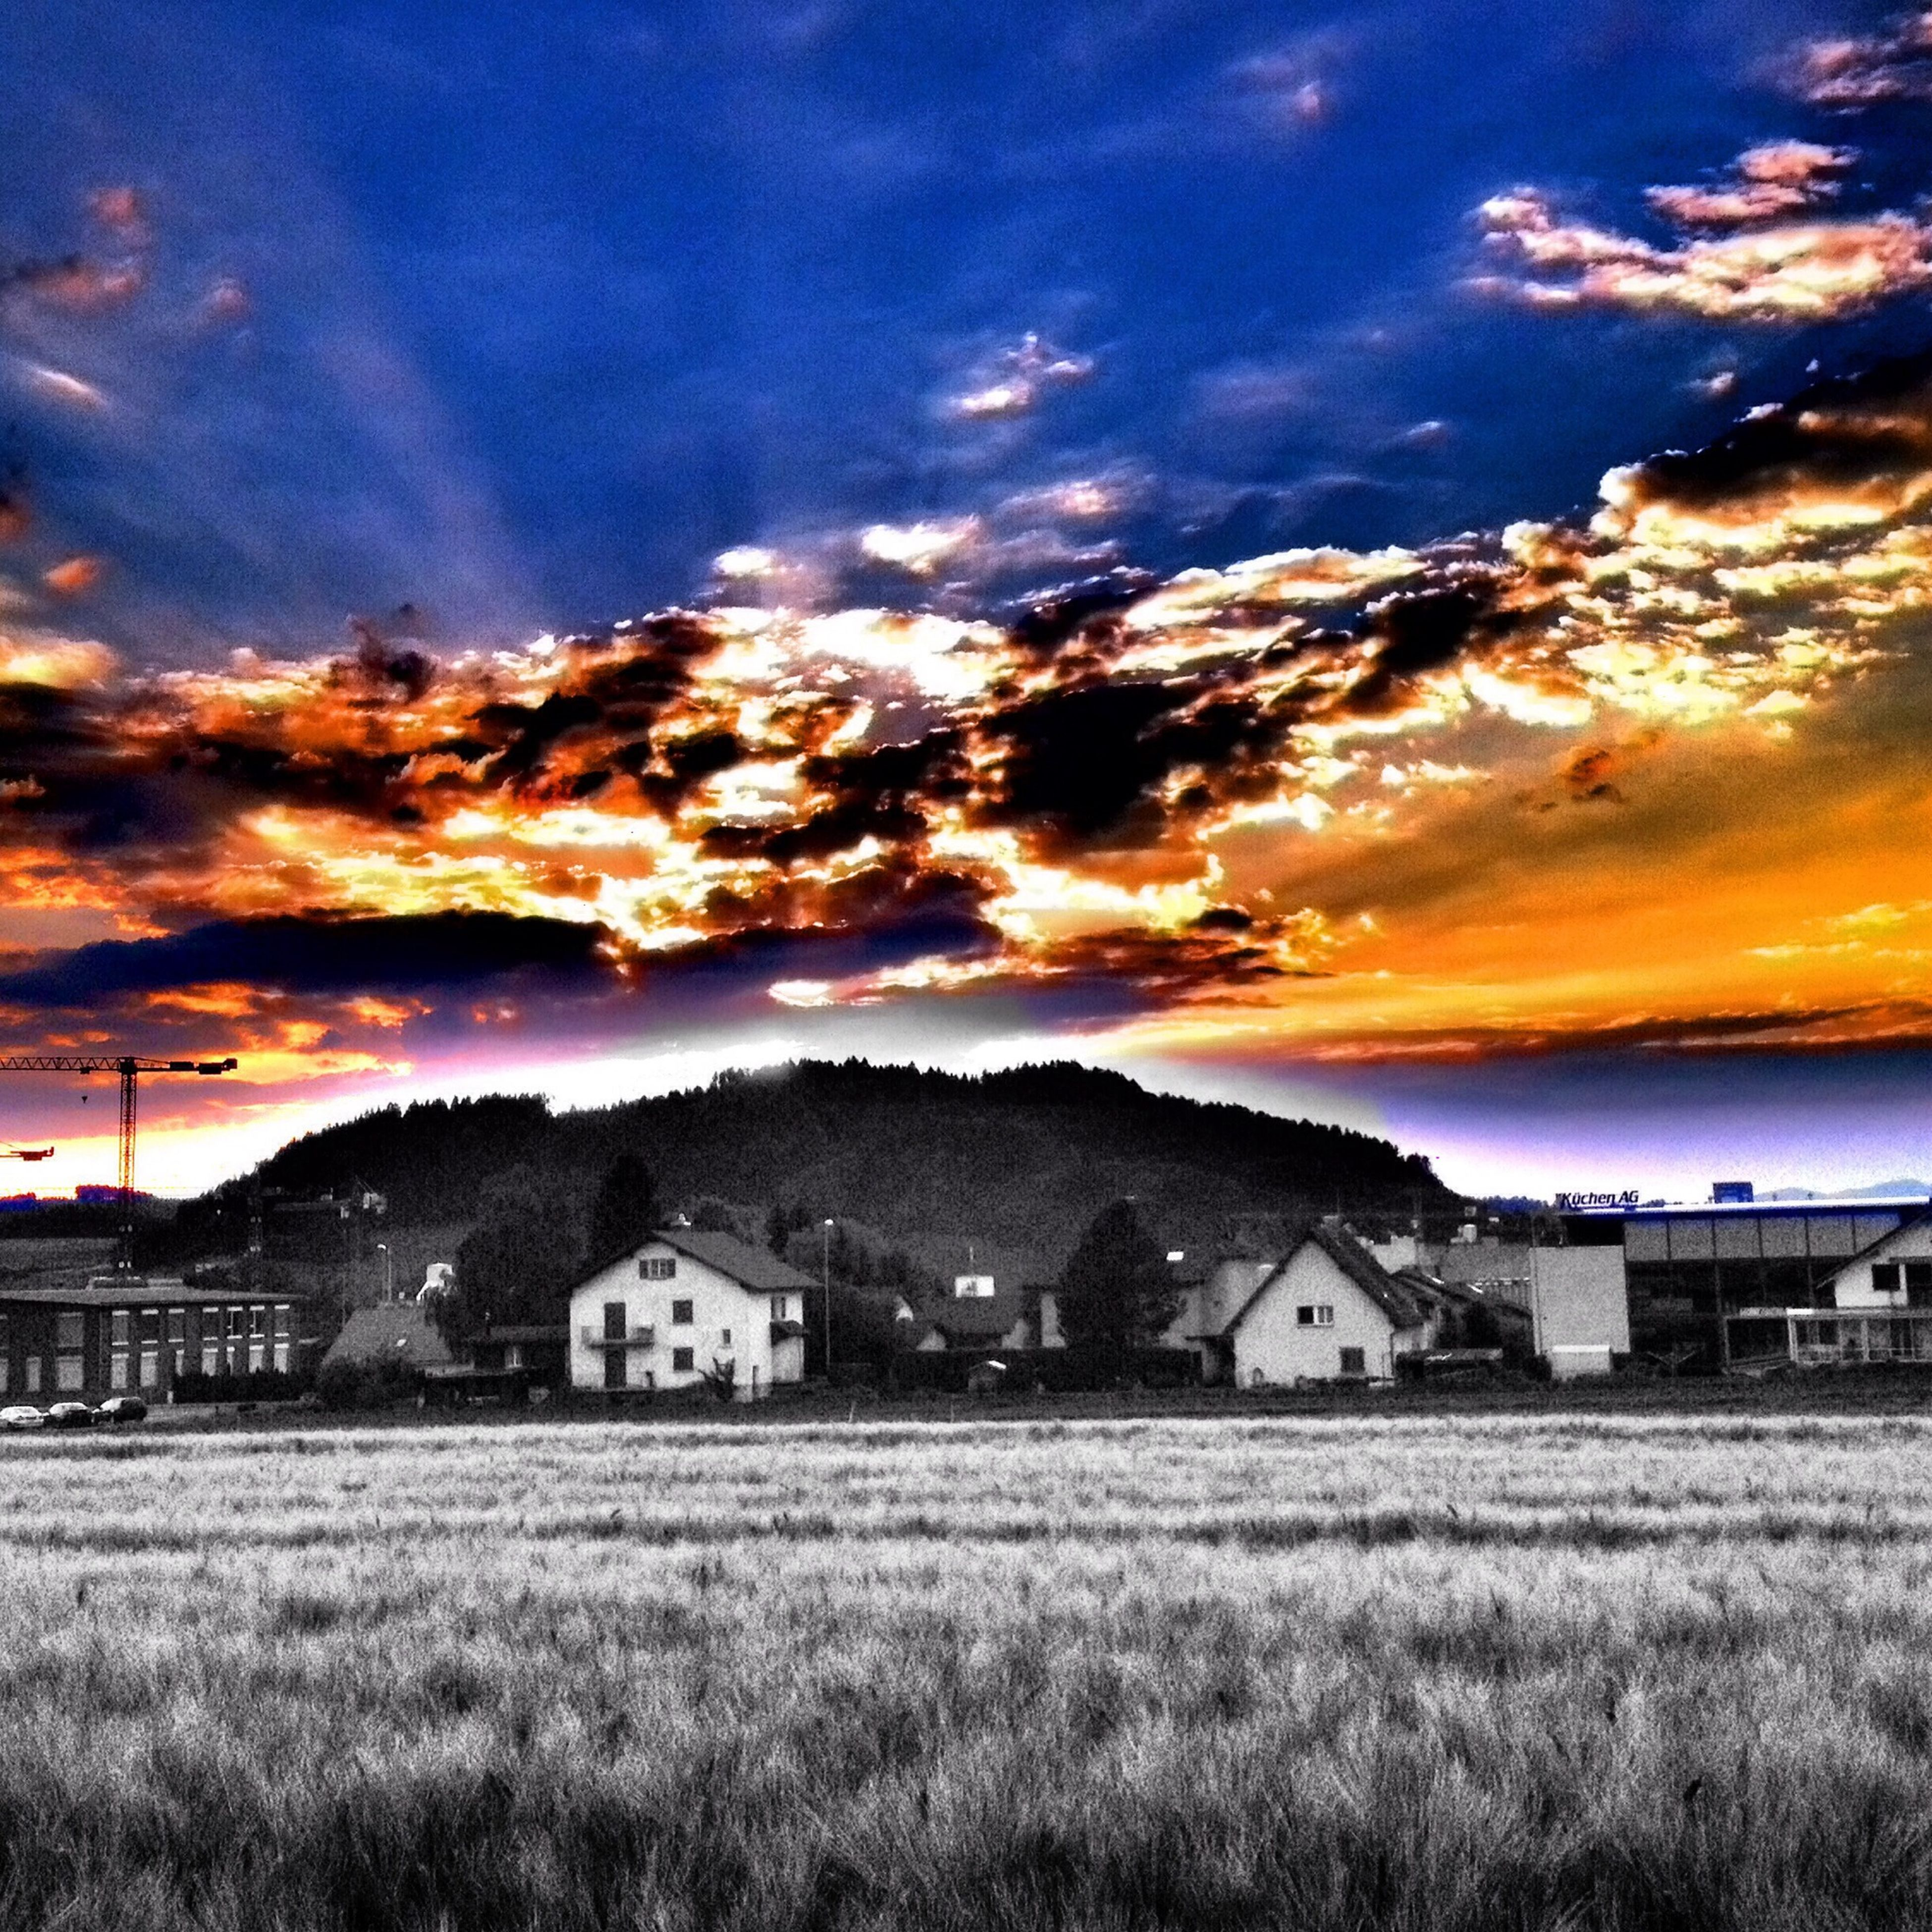 sunset, sky, building exterior, landscape, field, cloud - sky, architecture, built structure, orange color, house, scenics, beauty in nature, tranquil scene, rural scene, dramatic sky, tranquility, nature, grass, cloud, cloudy